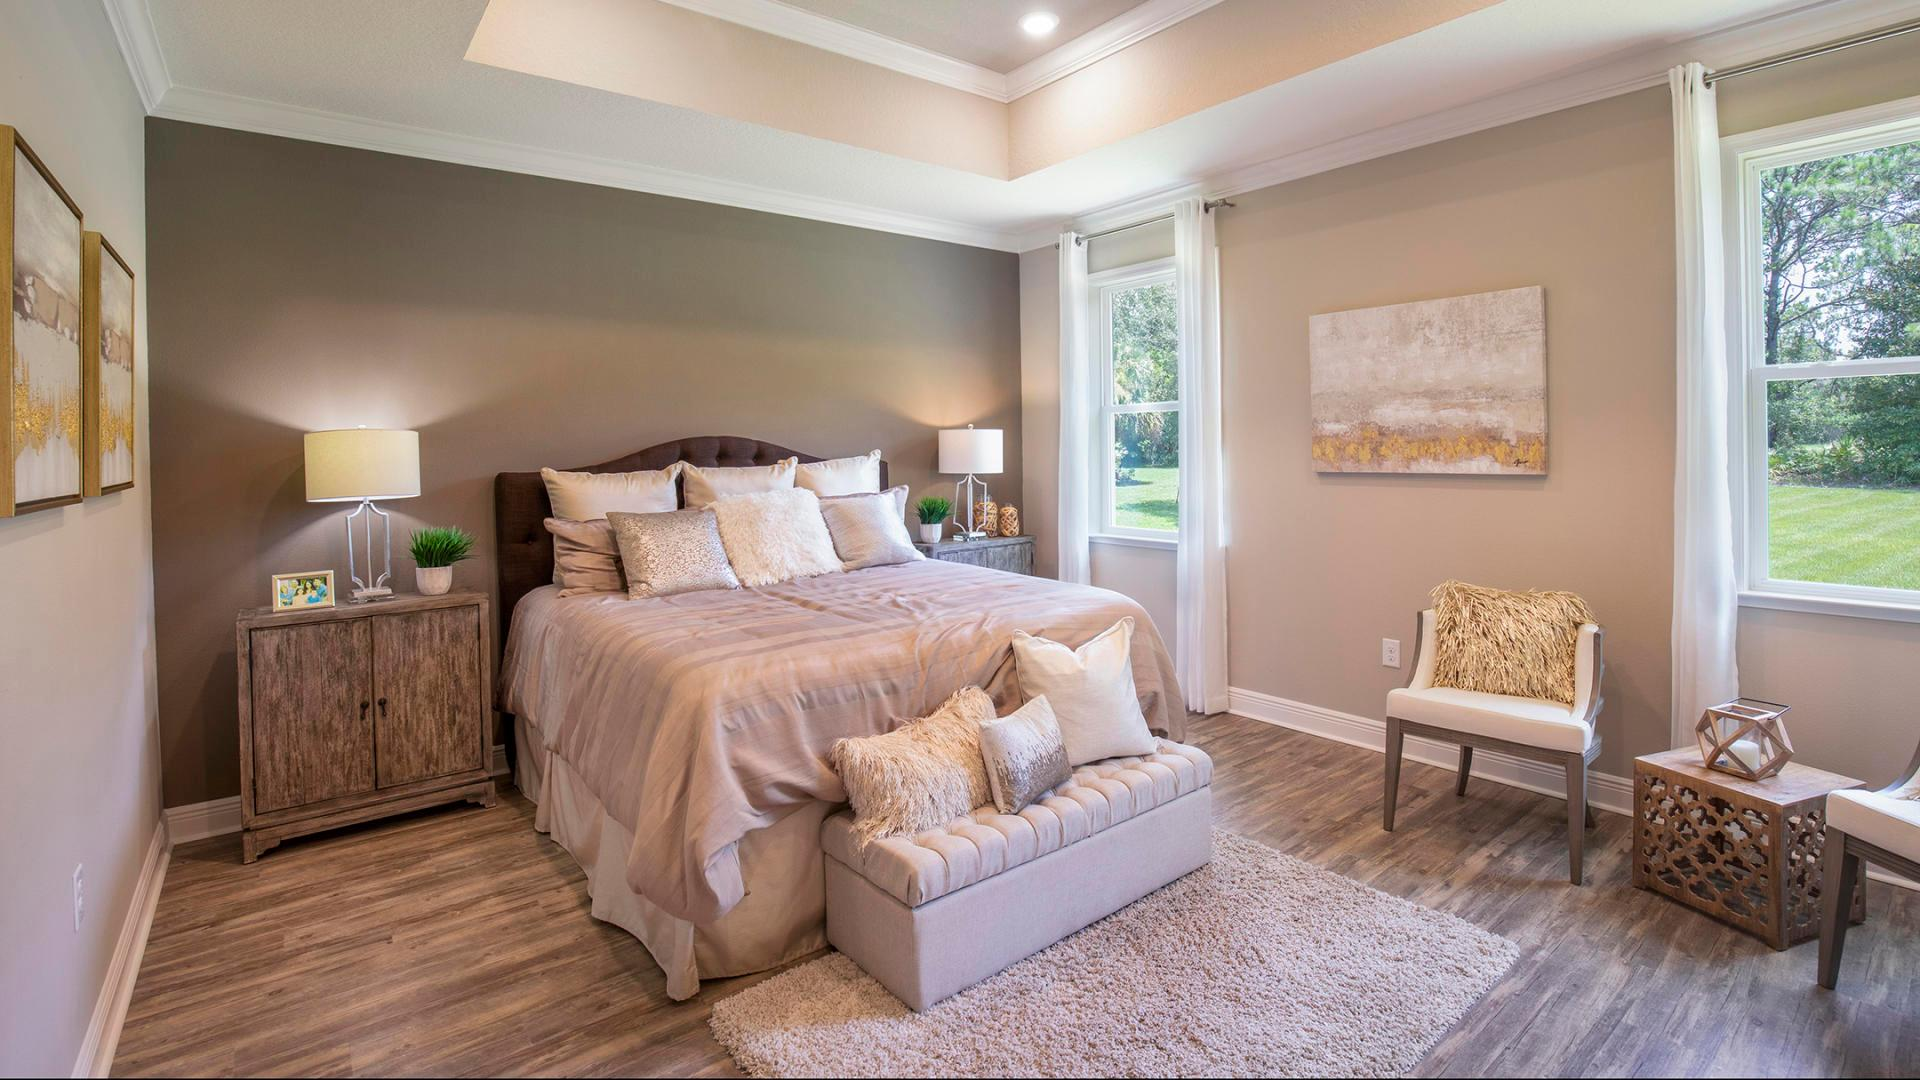 Bedroom featured in the Sienna By Maronda Homes in Ocala, FL